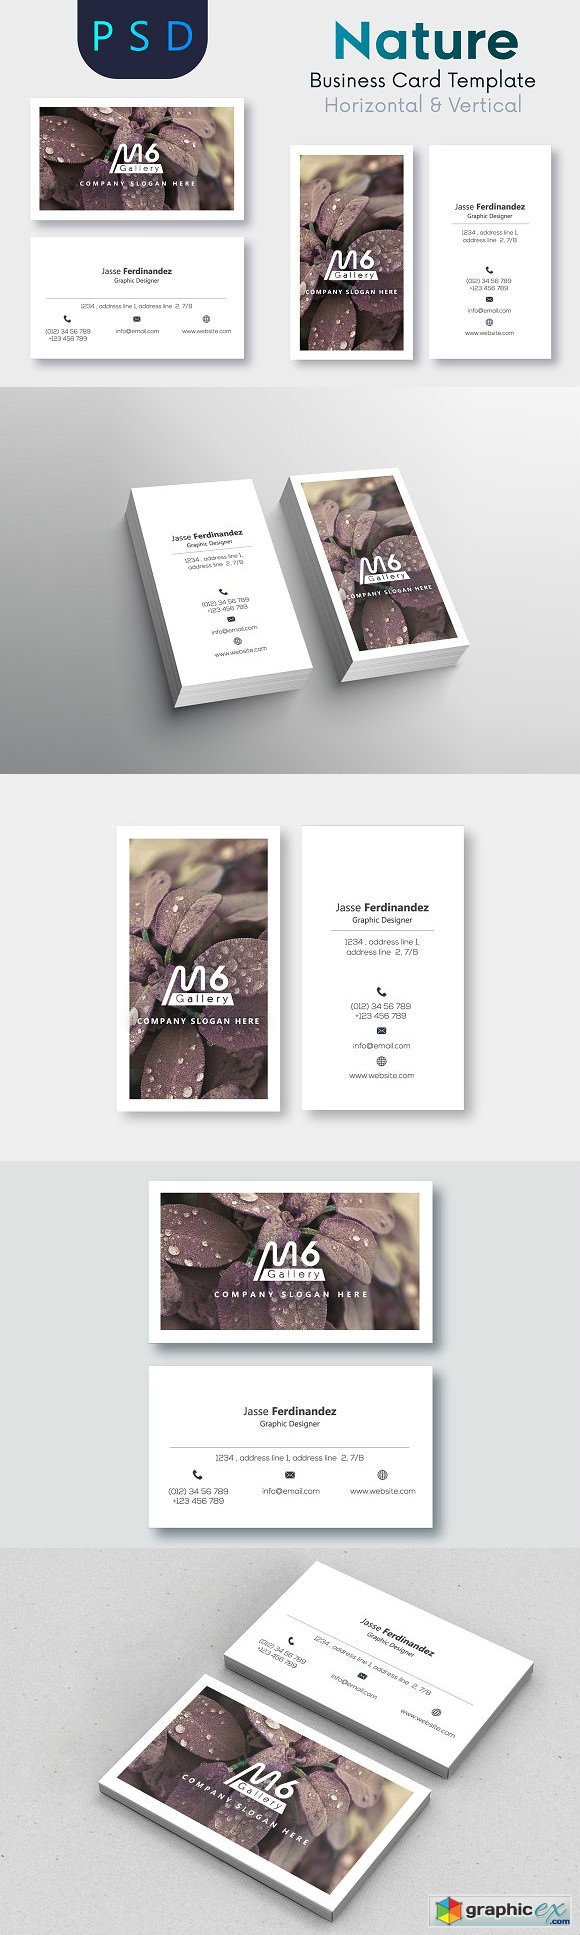 Nature Business Card Template- S51